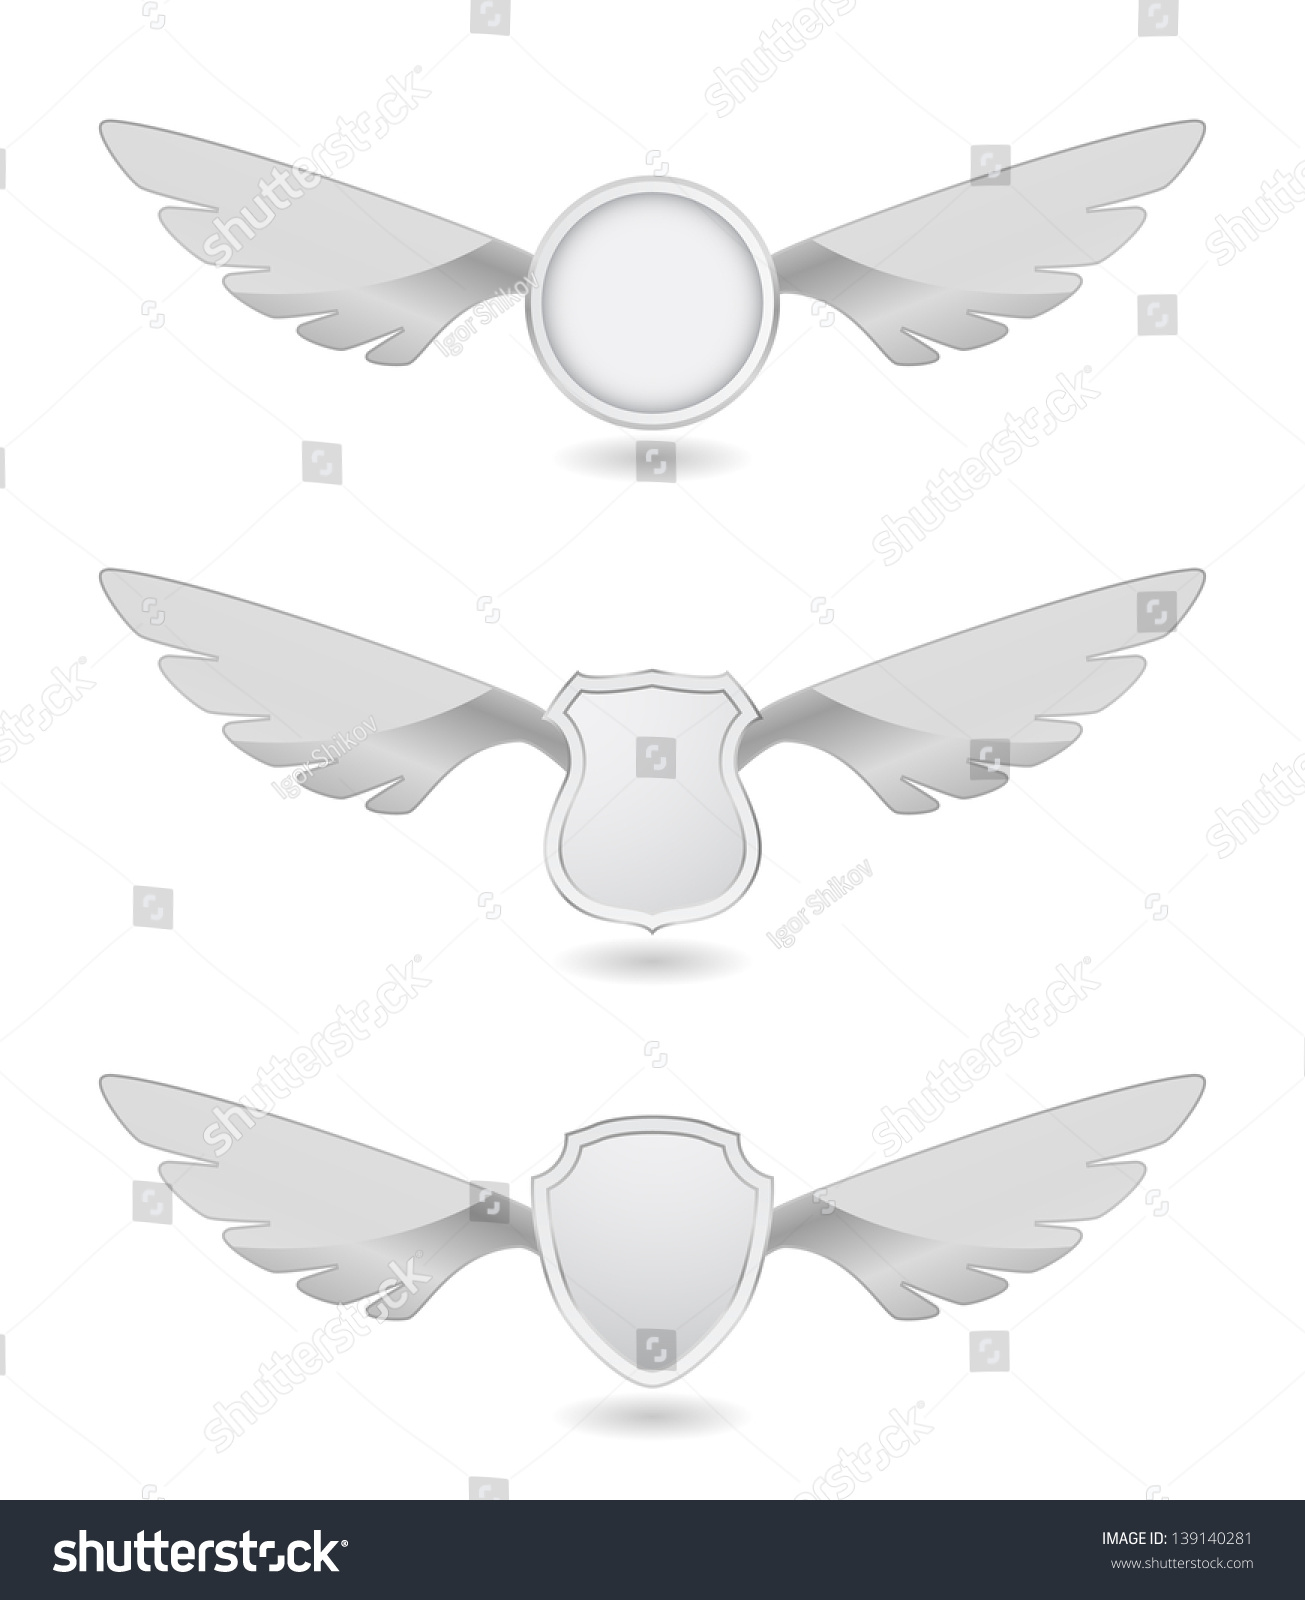 shield template printable contegri com